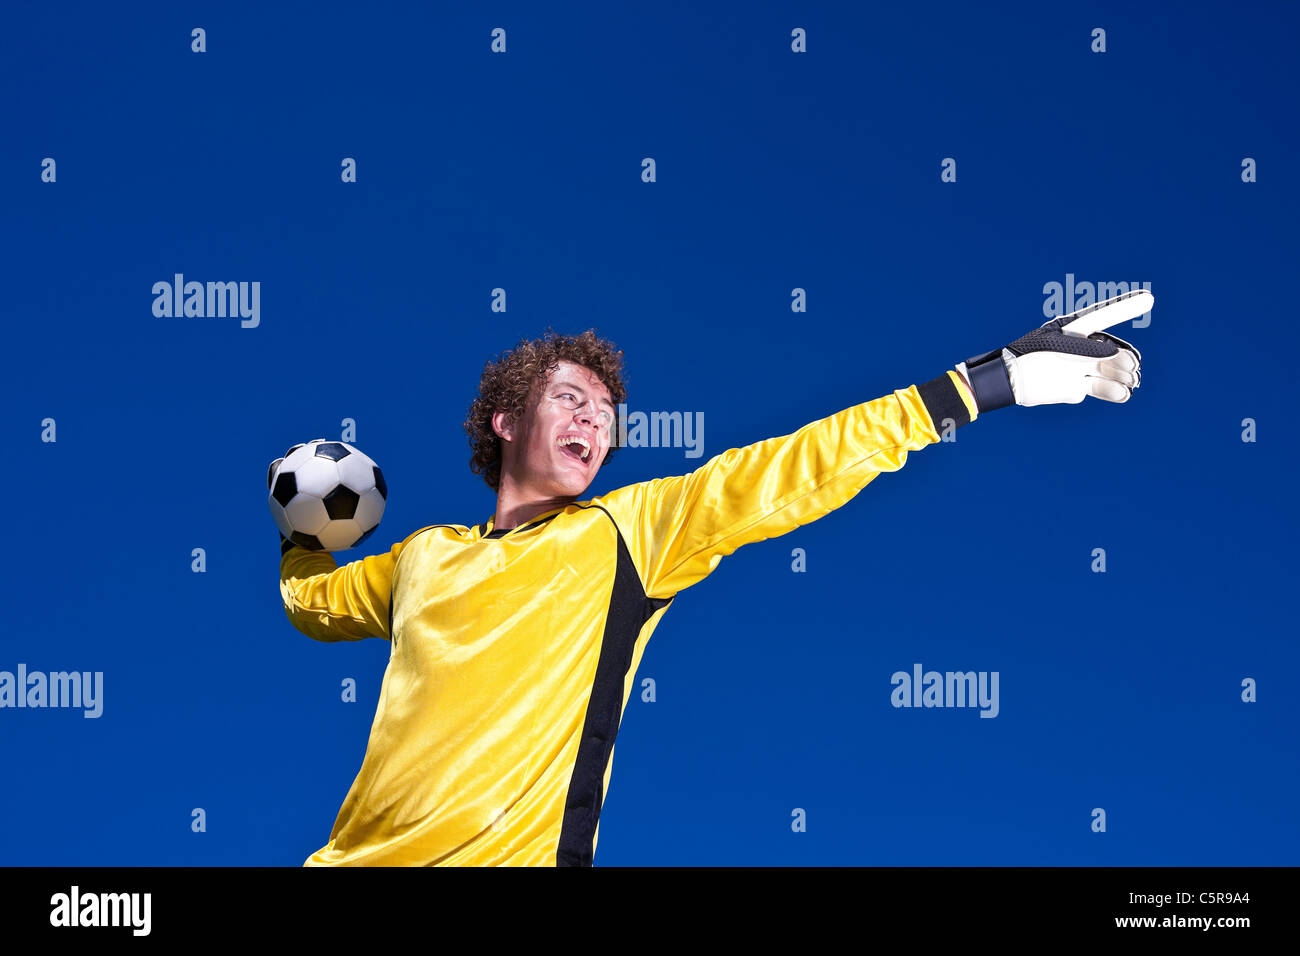 A goalkeeper shouts instruction to team mates - Stock Image